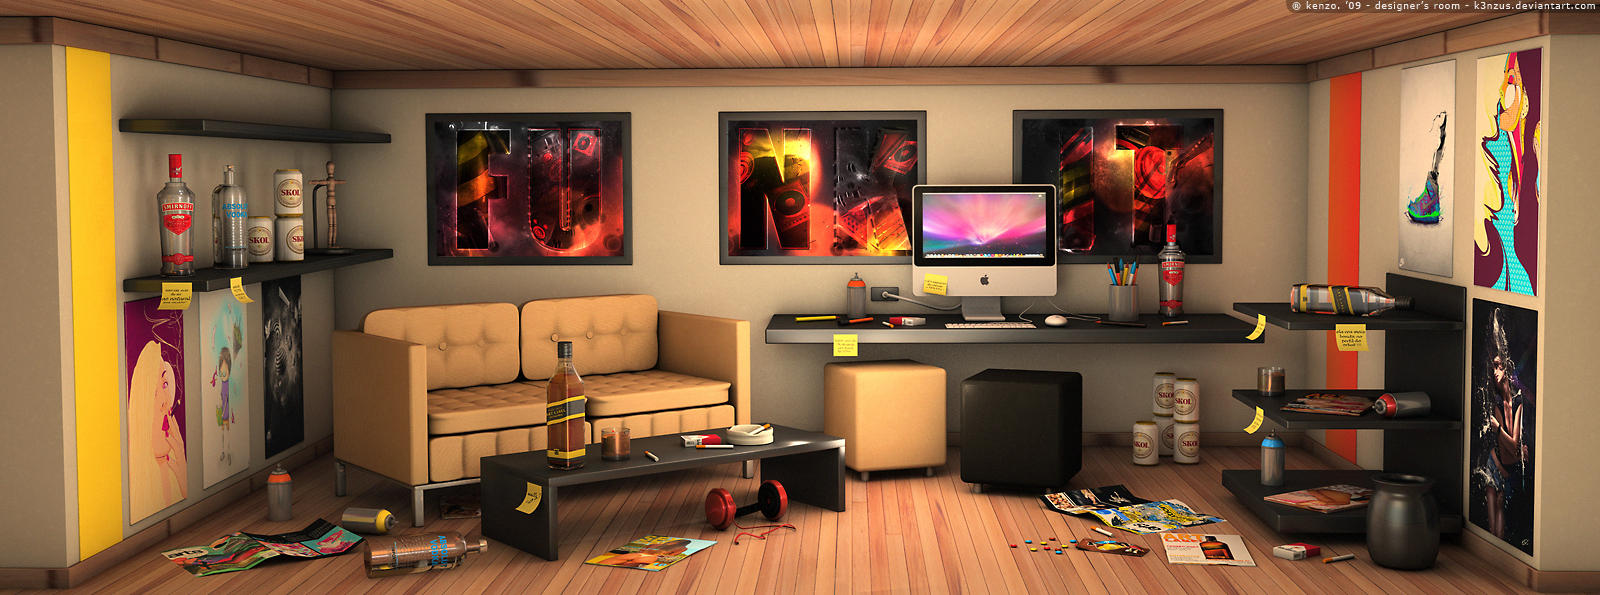 Designer 39 S Room By K3nzus On Deviantart